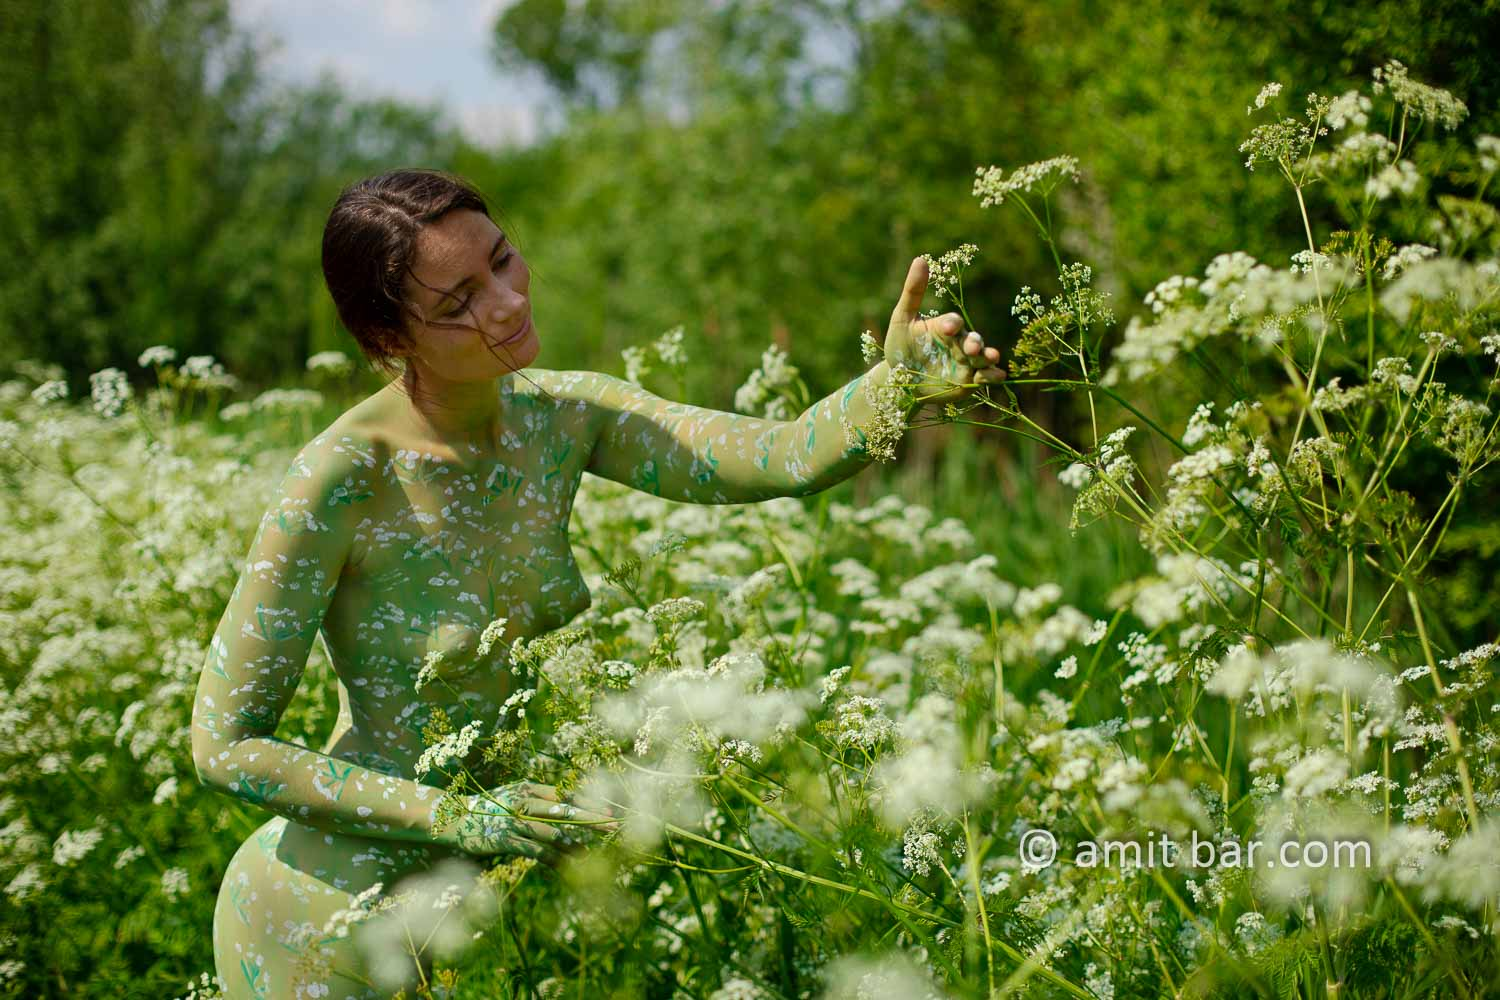 Cow parsley III: The wild plant Cow parsley inspired me to crate a body-painting on a sunny day besides my hometown.